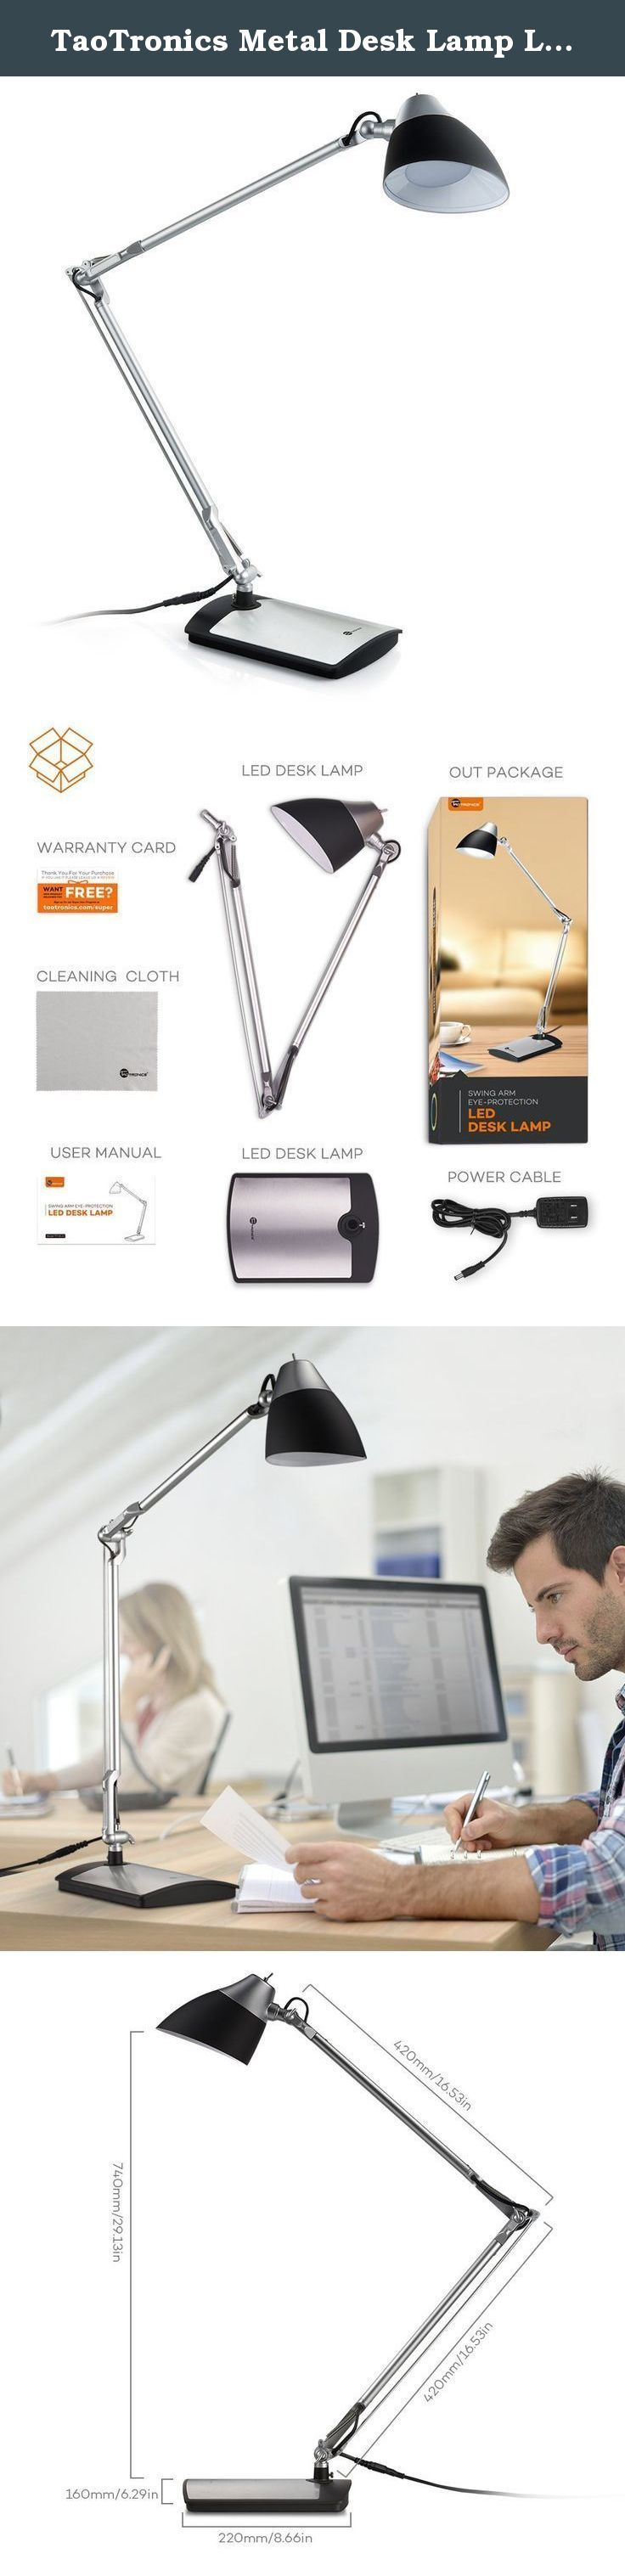 TaoTronics Metal Desk Lamp LED (Flexible Arm, Rotatable Head, Eye-Friendly Design, Black Plastic + Silver Aluminum Alloy Finish), 6W. Modern Lighting Throw out your old incandescent lamps that barely illuminate your working space and welcome a modern alternative. The TaoTronics TT-DL12 LED desk lamp is a welcome addition to any home or office. Elegantly designed with energy-efficiency in mind, the lamp is ideal for reading, working, and studying. Eco-Friendly This new generation of...